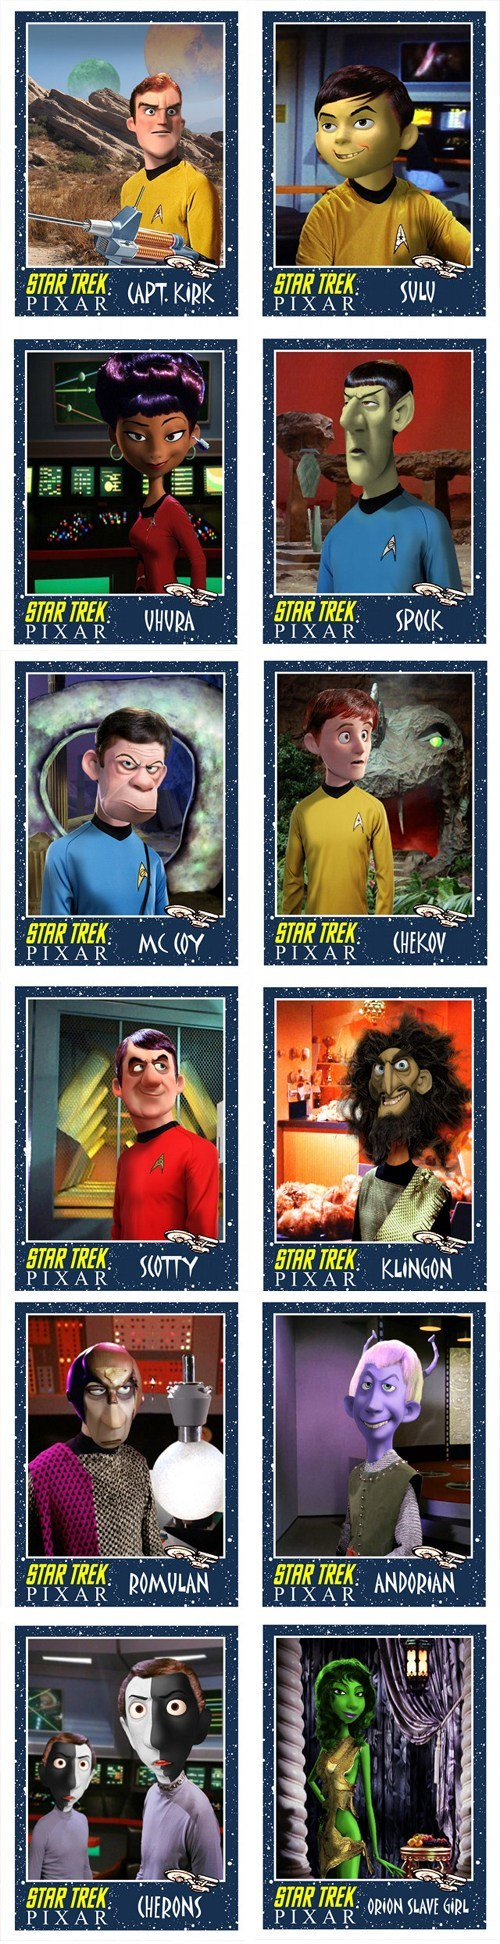 Captain Kirk Fan Art Star Trek mashups McCoy Spock pixar sulu uhura scotty